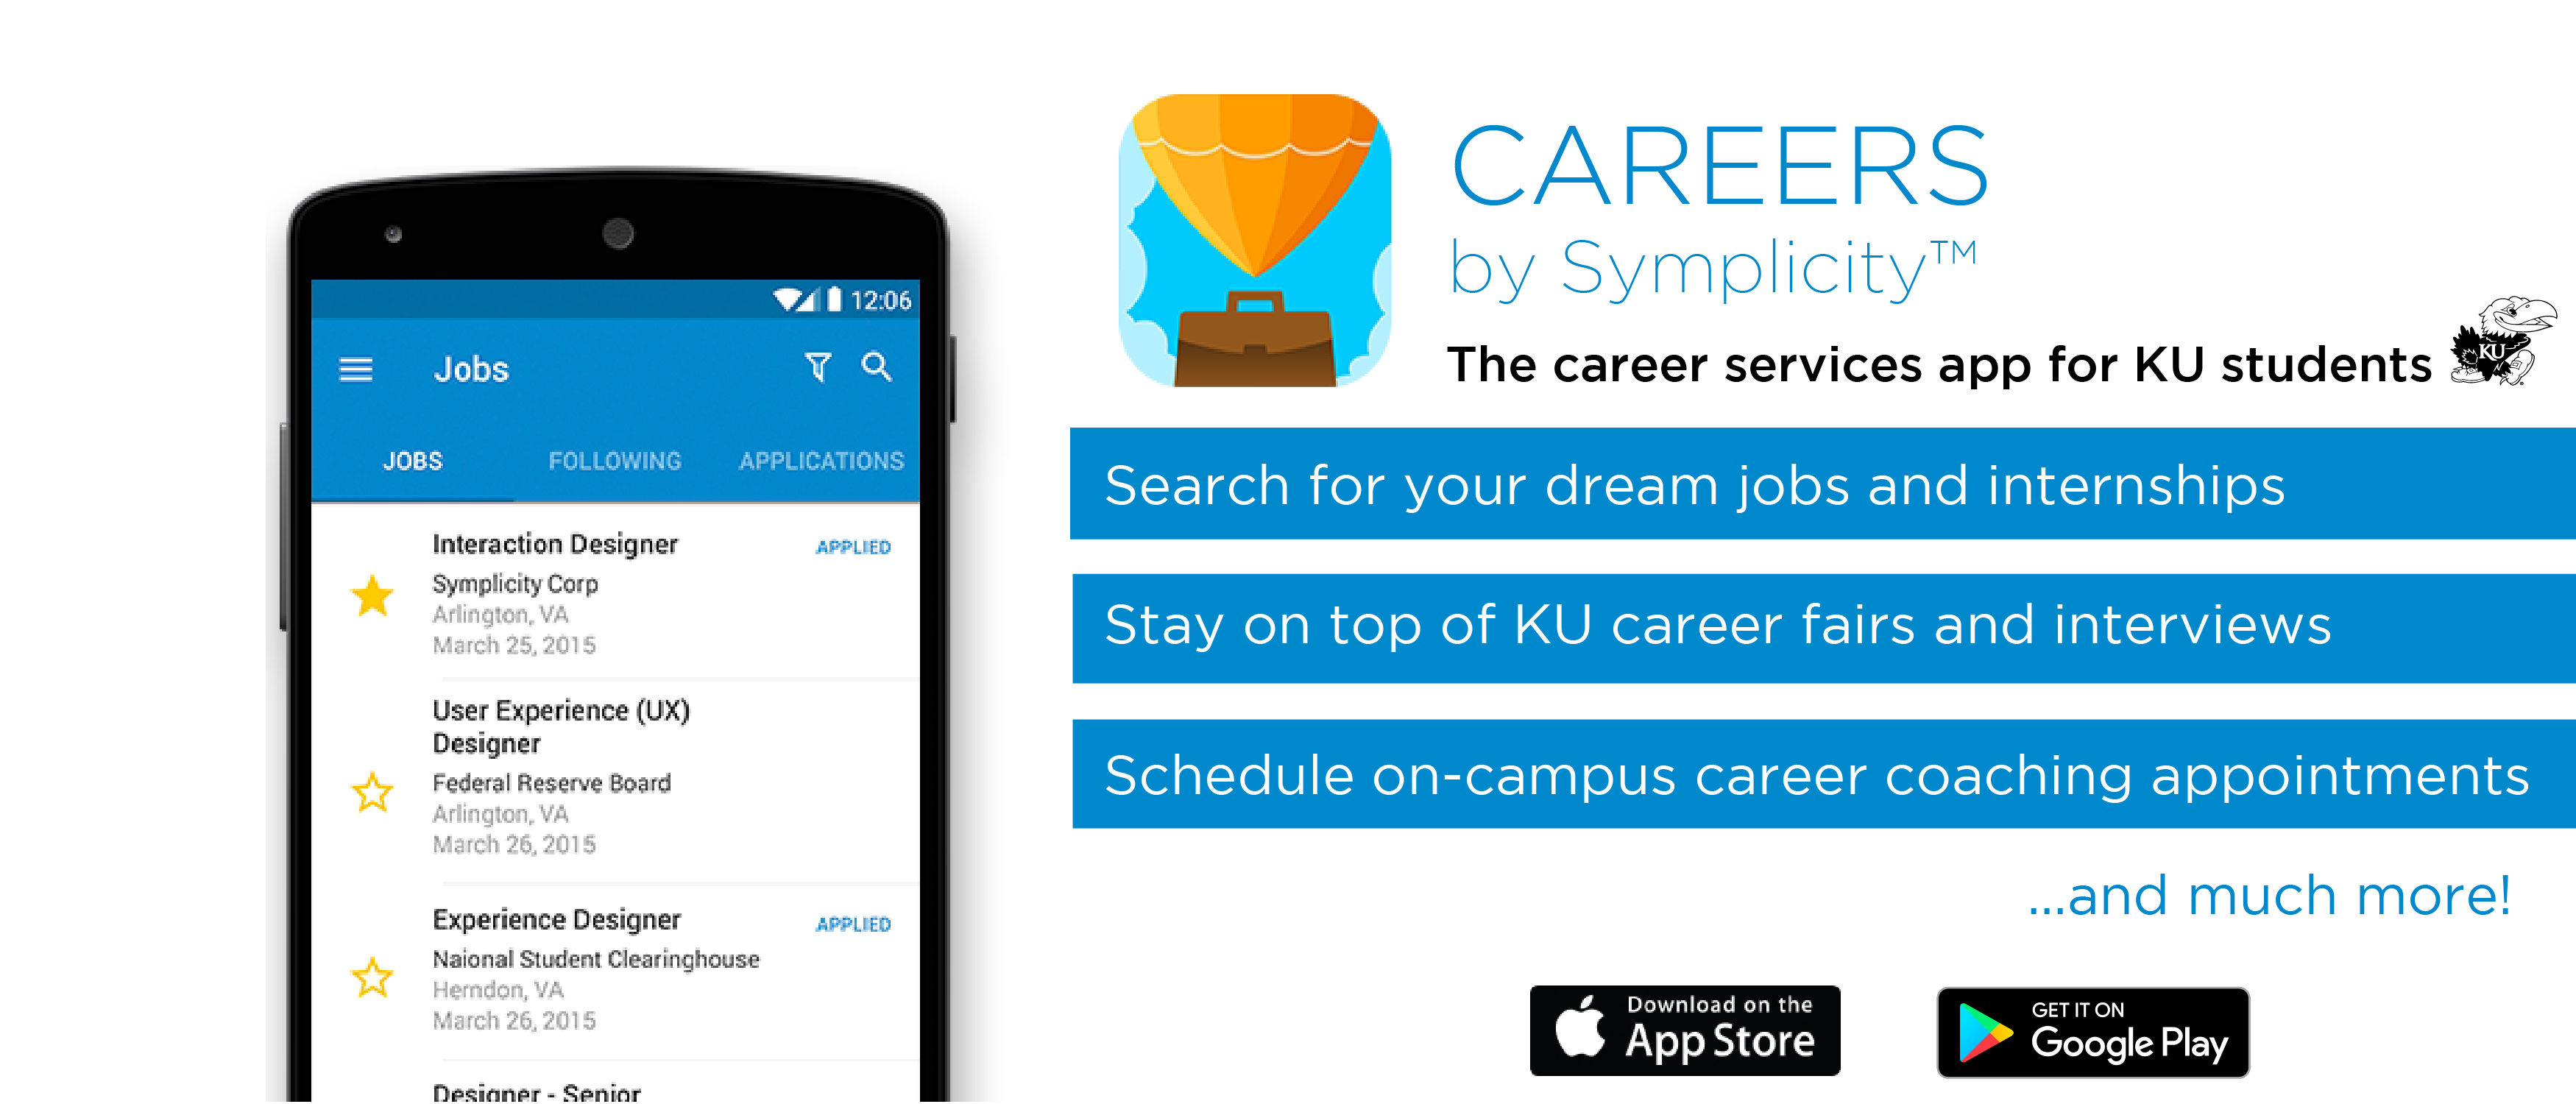 Careers by Symplicity - download the app today!